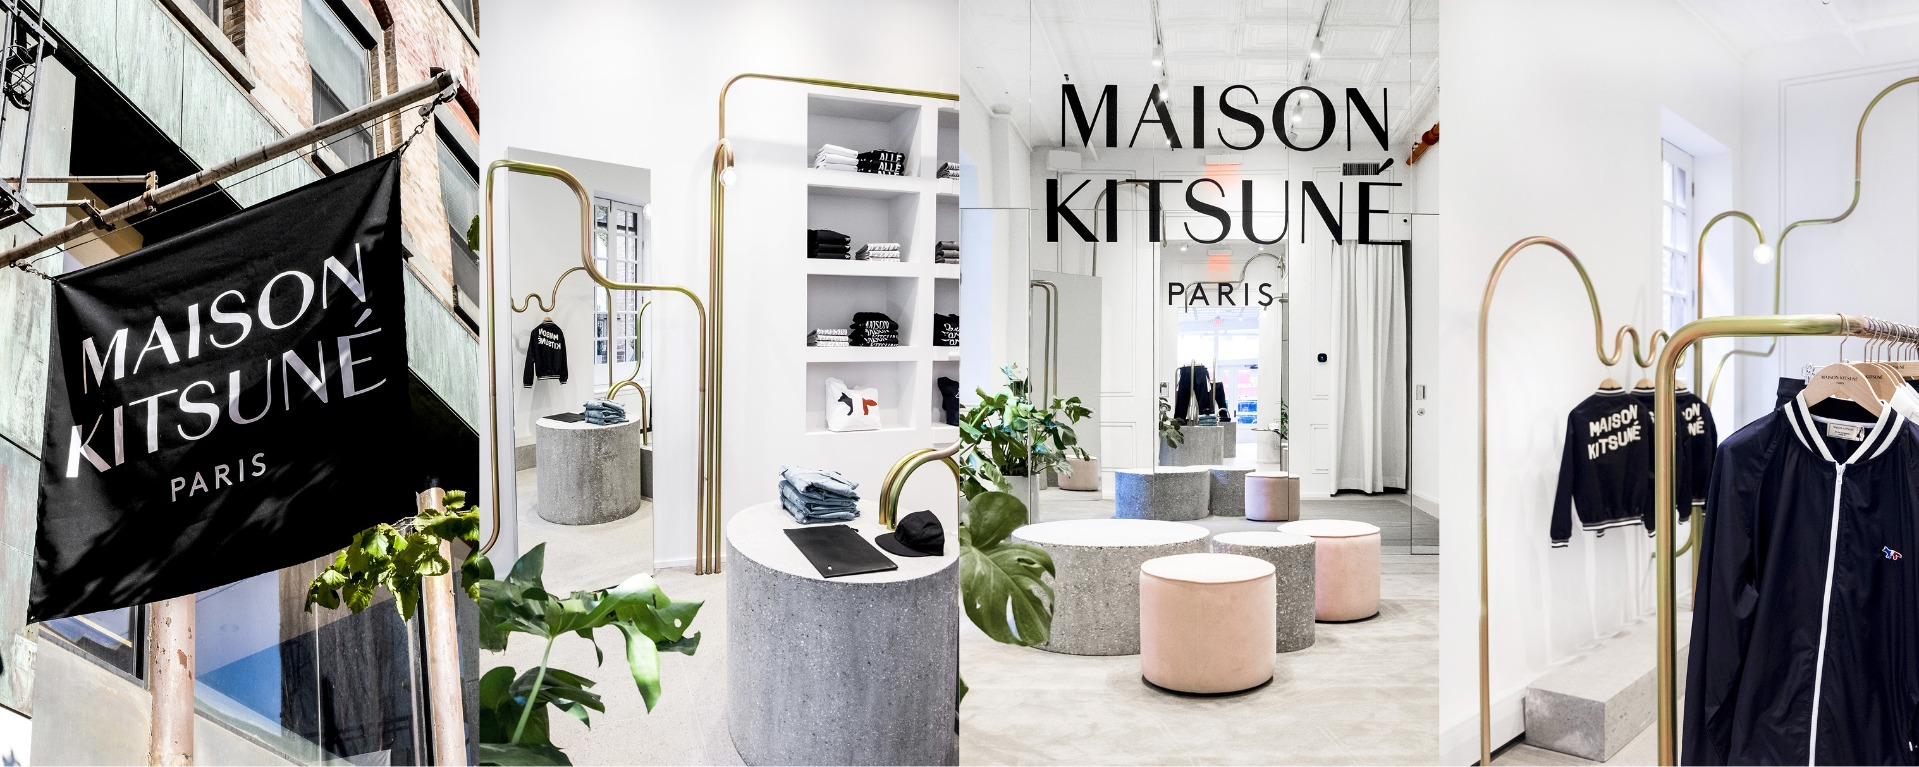 https://maisonkitsune.com/media/wysiwyg/030918_launch-5.jpg